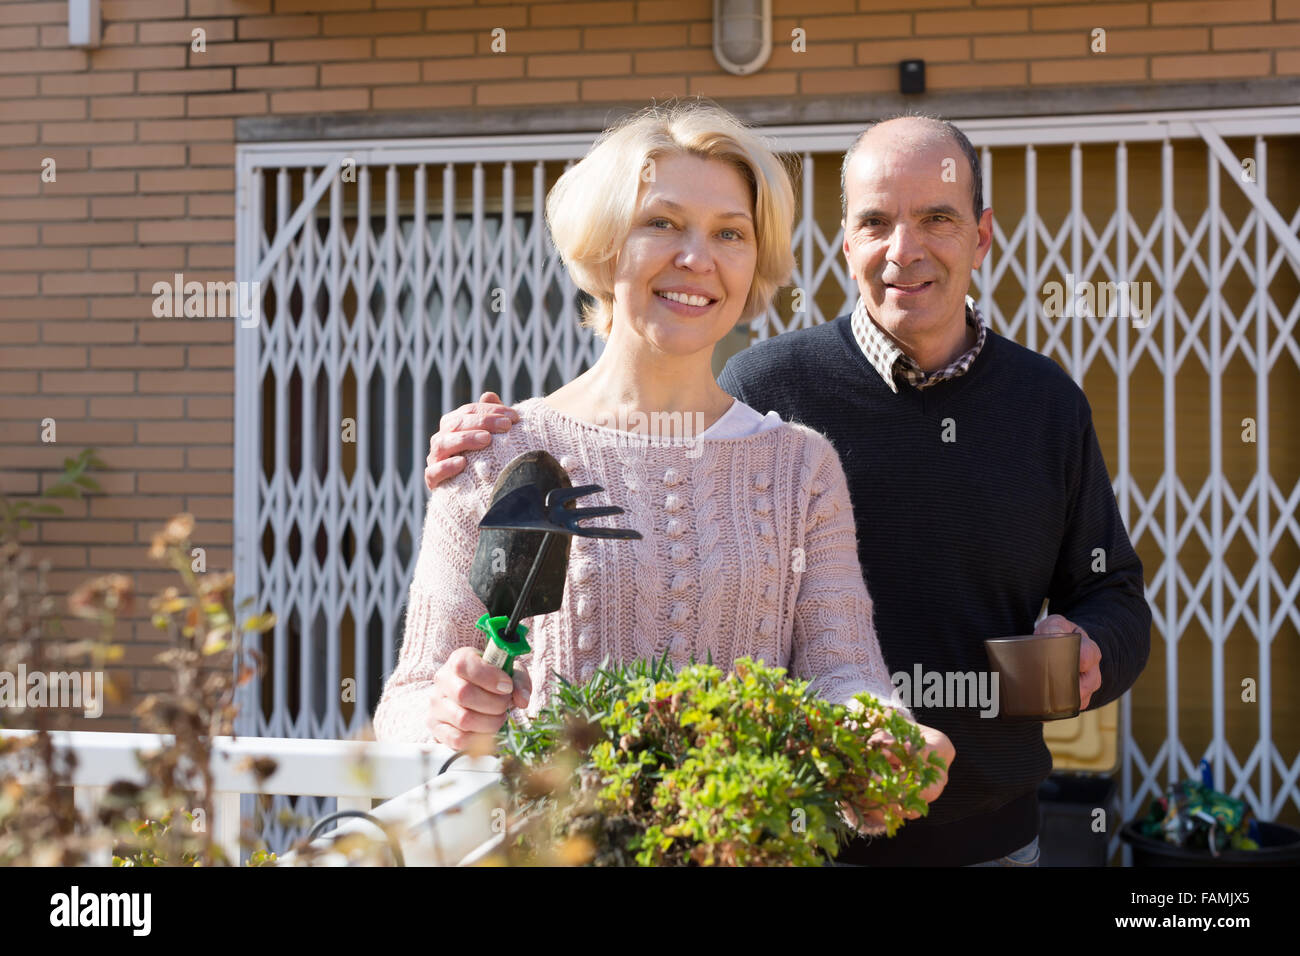 Elderly woman with horticultural sundry and aged man drinking tea in patio Stock Photo